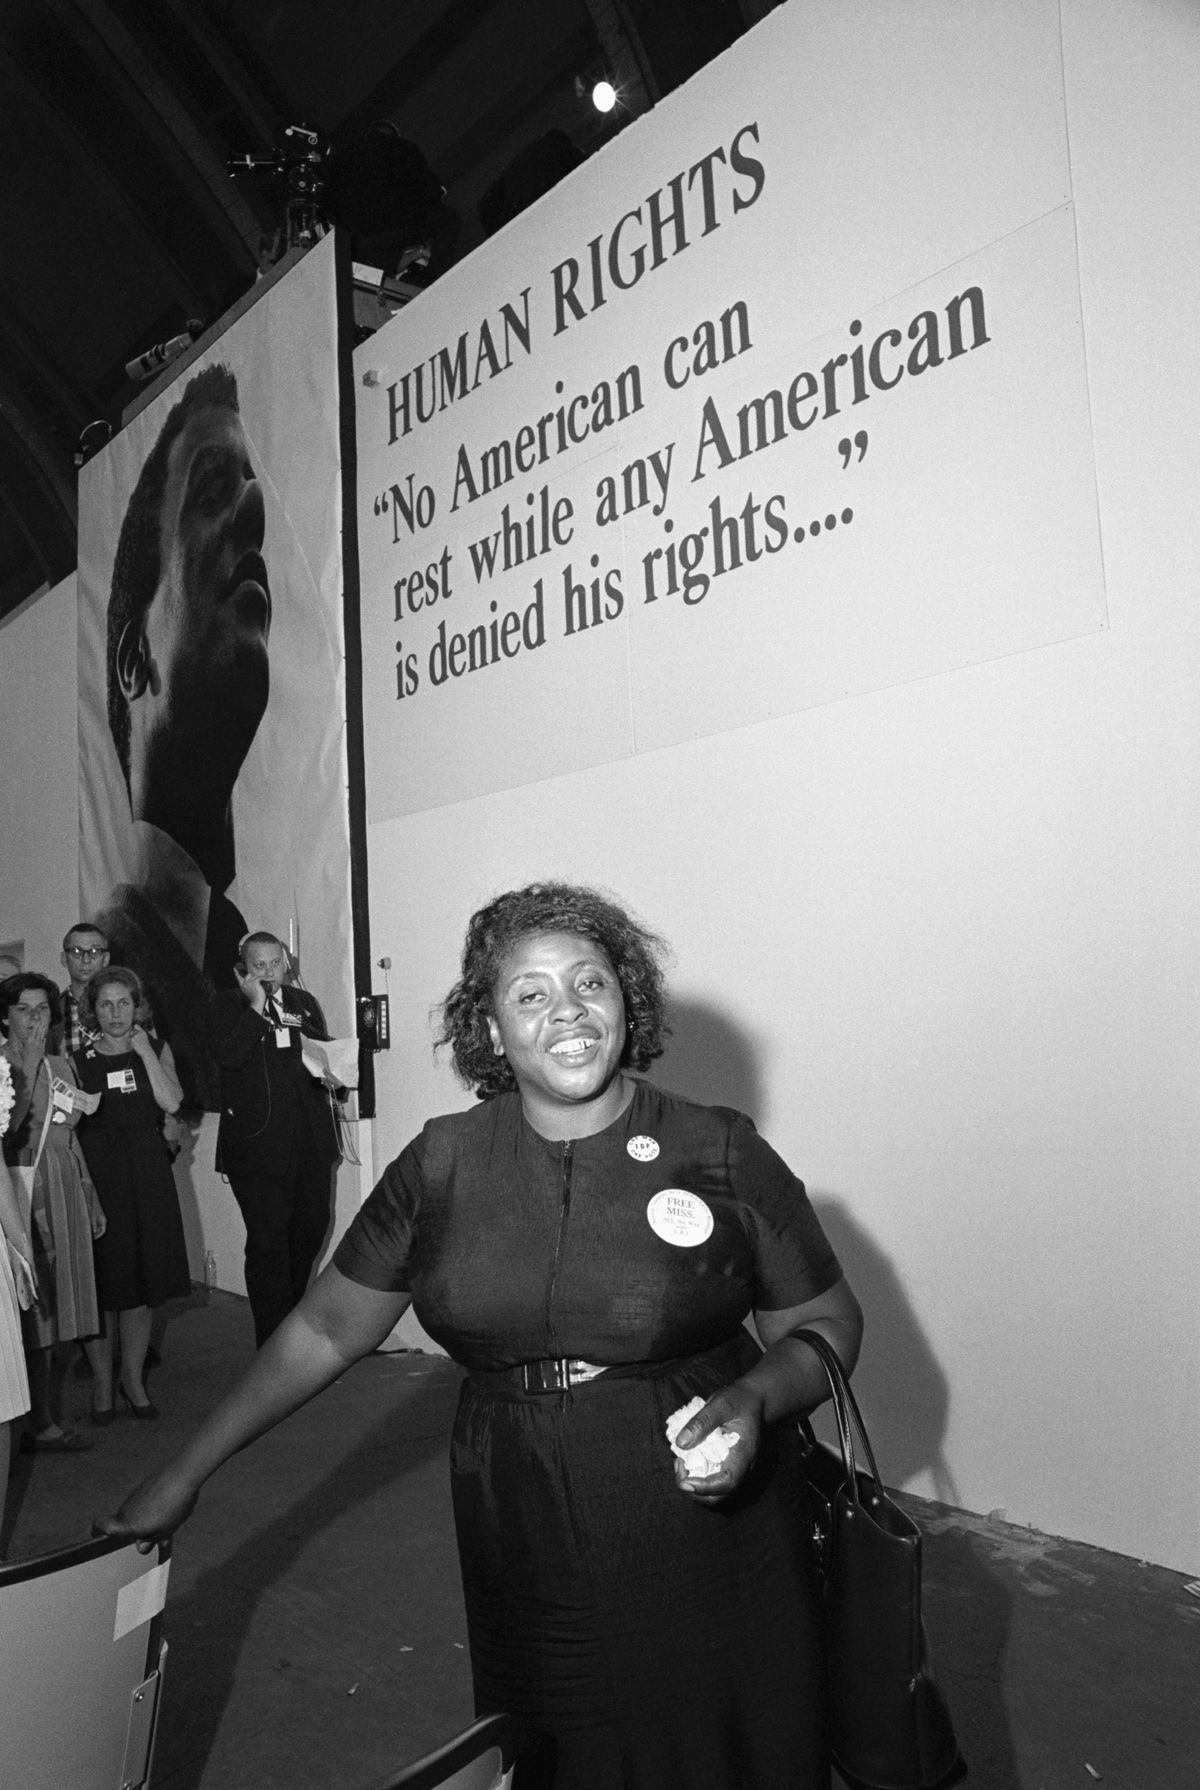 "The activist Fannie Lou Hamer poses for a photo at the 1964 National Democratic Convention in front of a sign reading ""HUMAN RIGHTS No American can rest while any American is denied his rights..."""